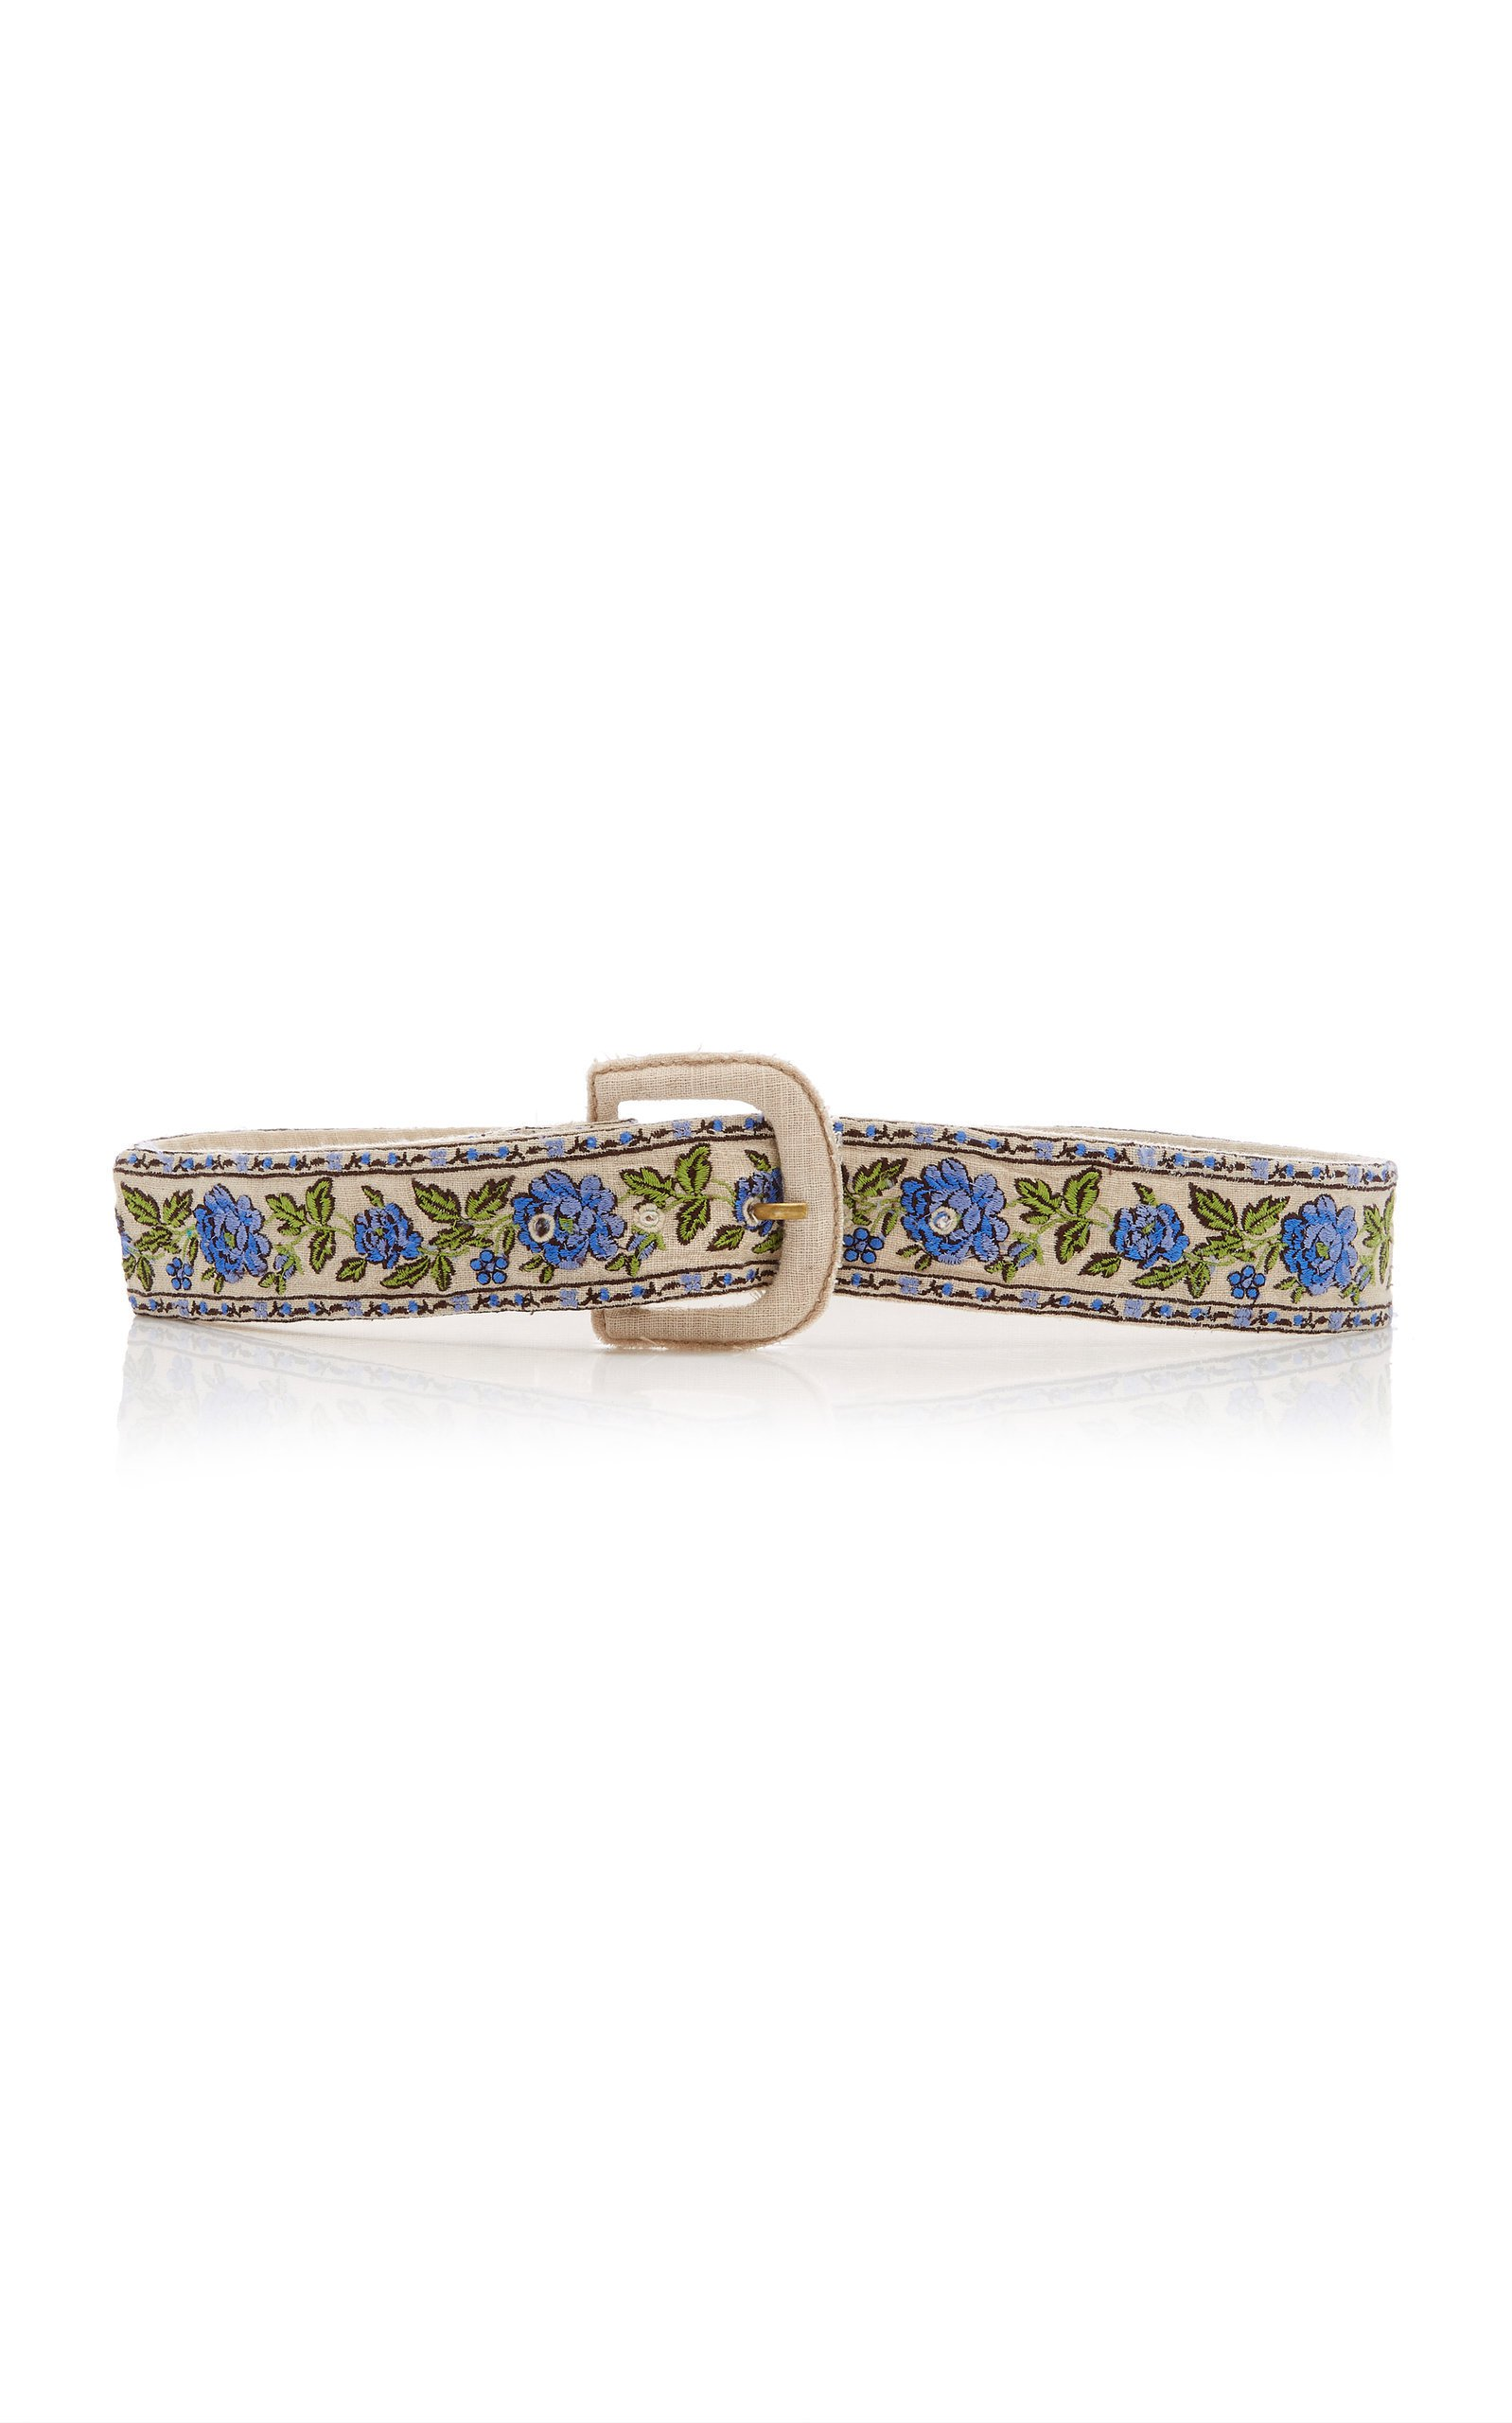 LoveShackFancy Santana Shirred Embroidered Belt